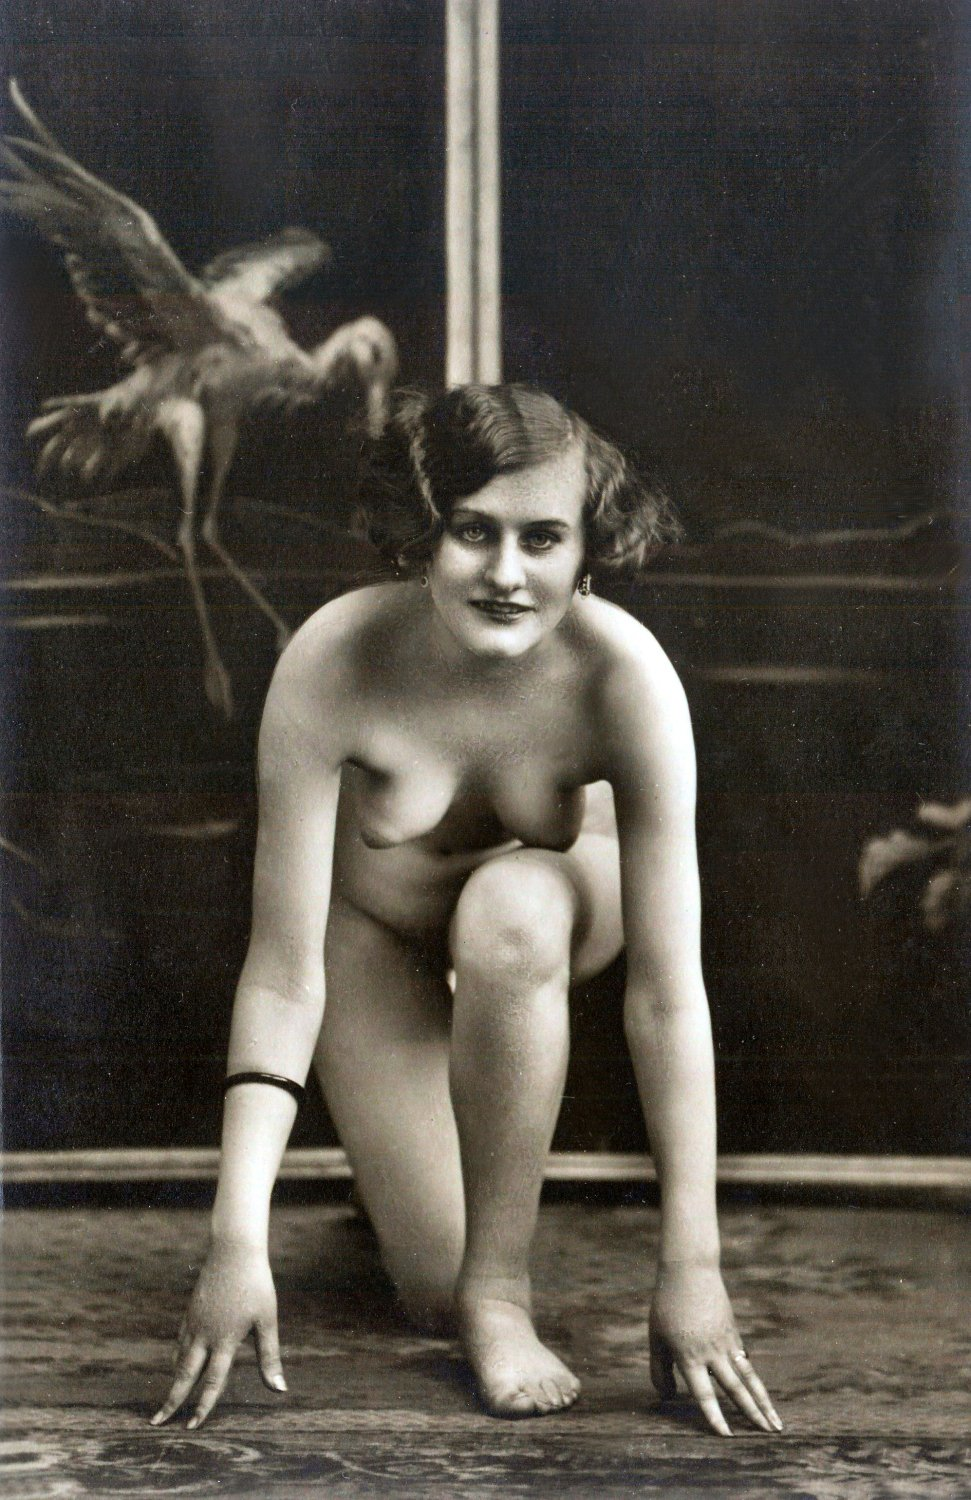 vintage erotica image in downloadable and printable digital format. High resolution.